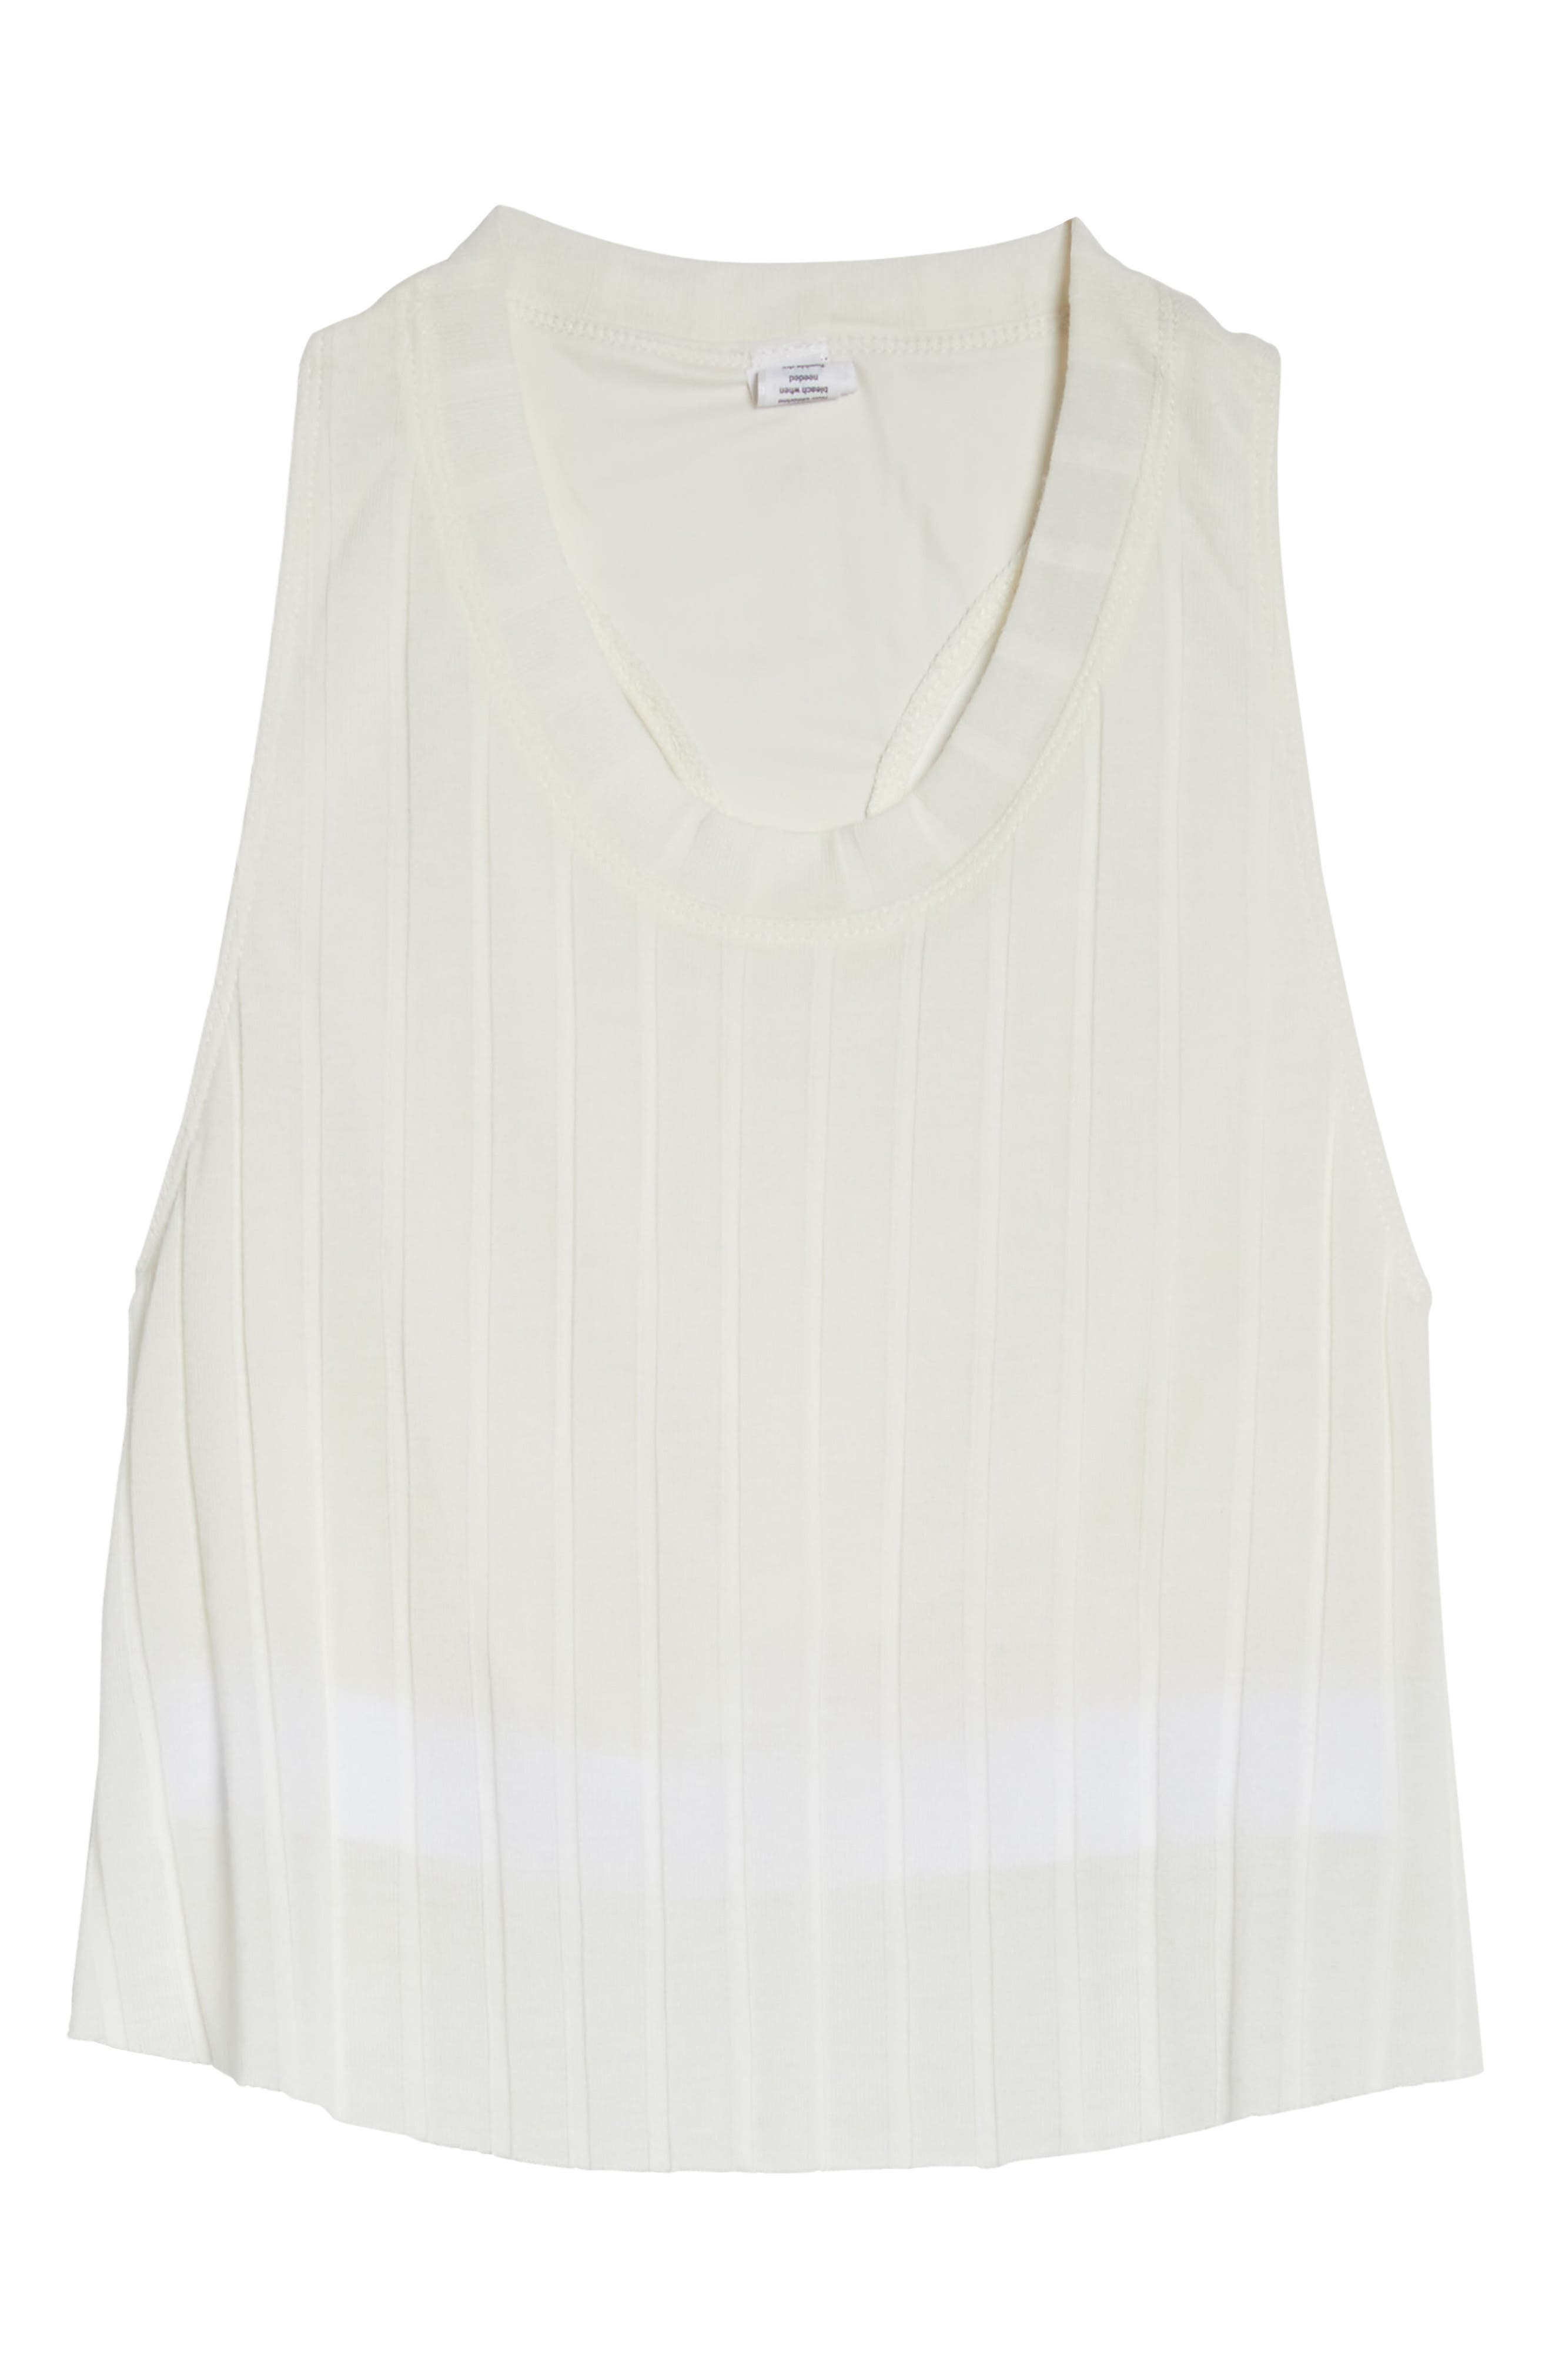 Ethereal Tank with Bra,                             Alternate thumbnail 13, color,